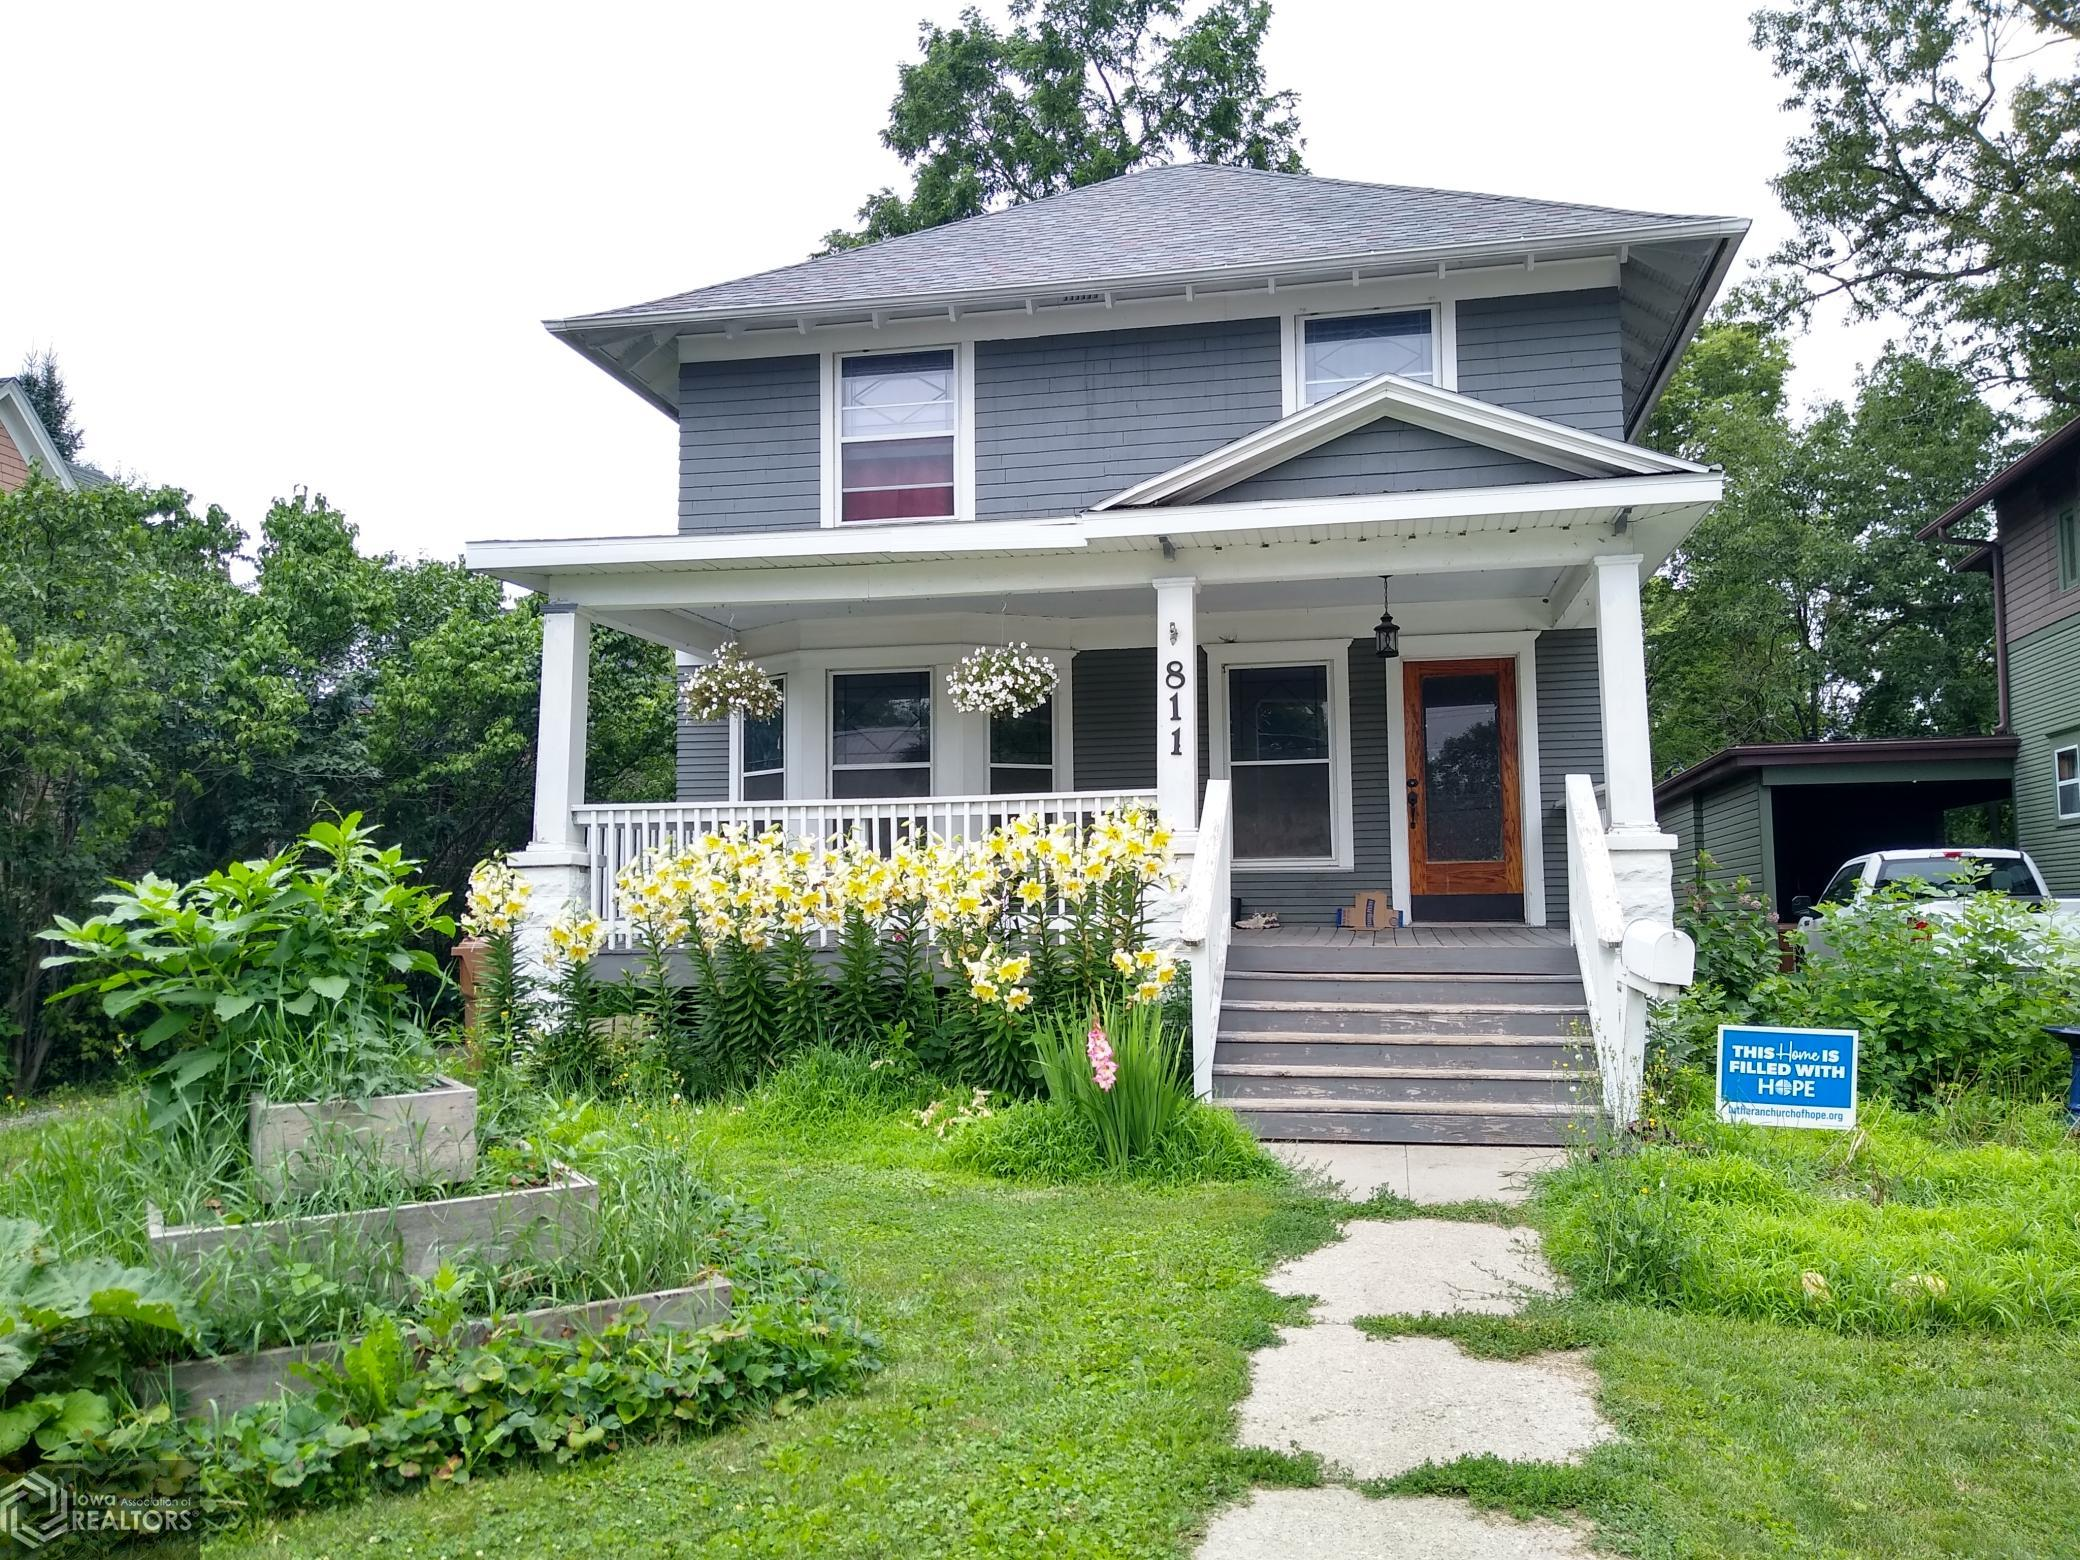 811 8th, Grinnell, Iowa 50112-1620, 4 Bedrooms Bedrooms, ,1 BathroomBathrooms,Single Family,For Sale,8th,6016113